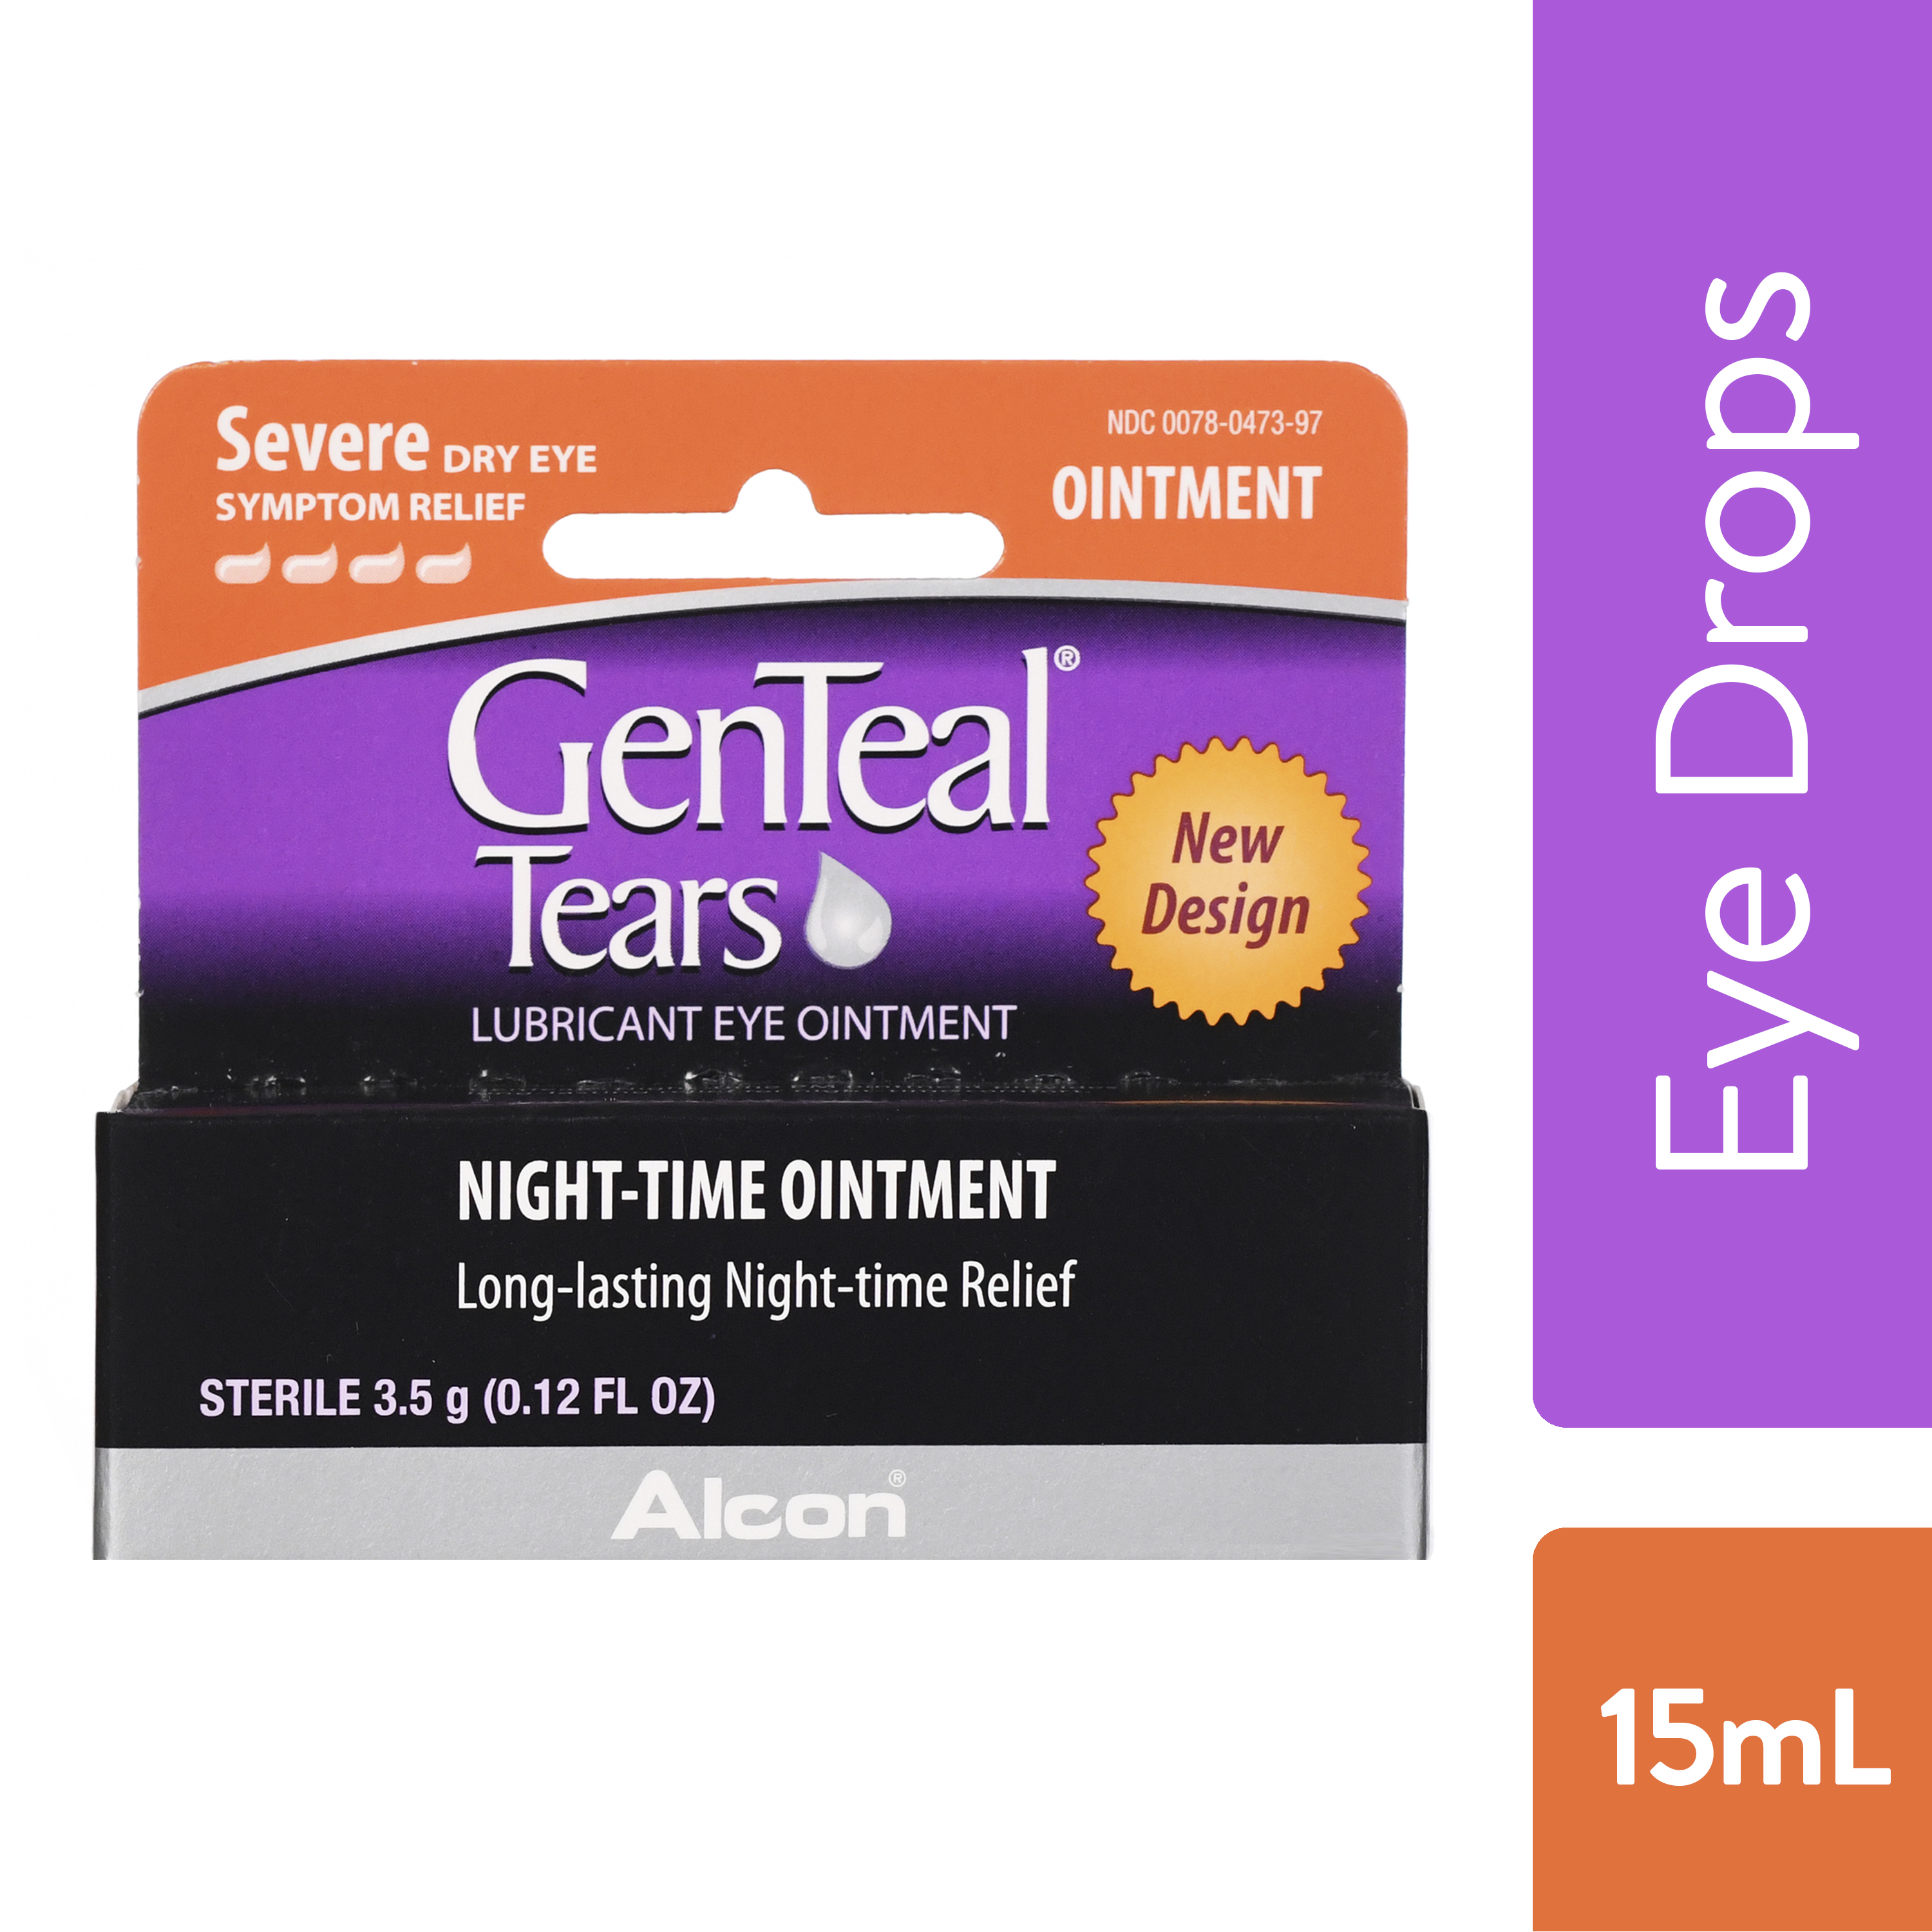 GENTEAL Tears Severe Eye Ointment for Severe Dry Eye Symptom Relief, 15ml